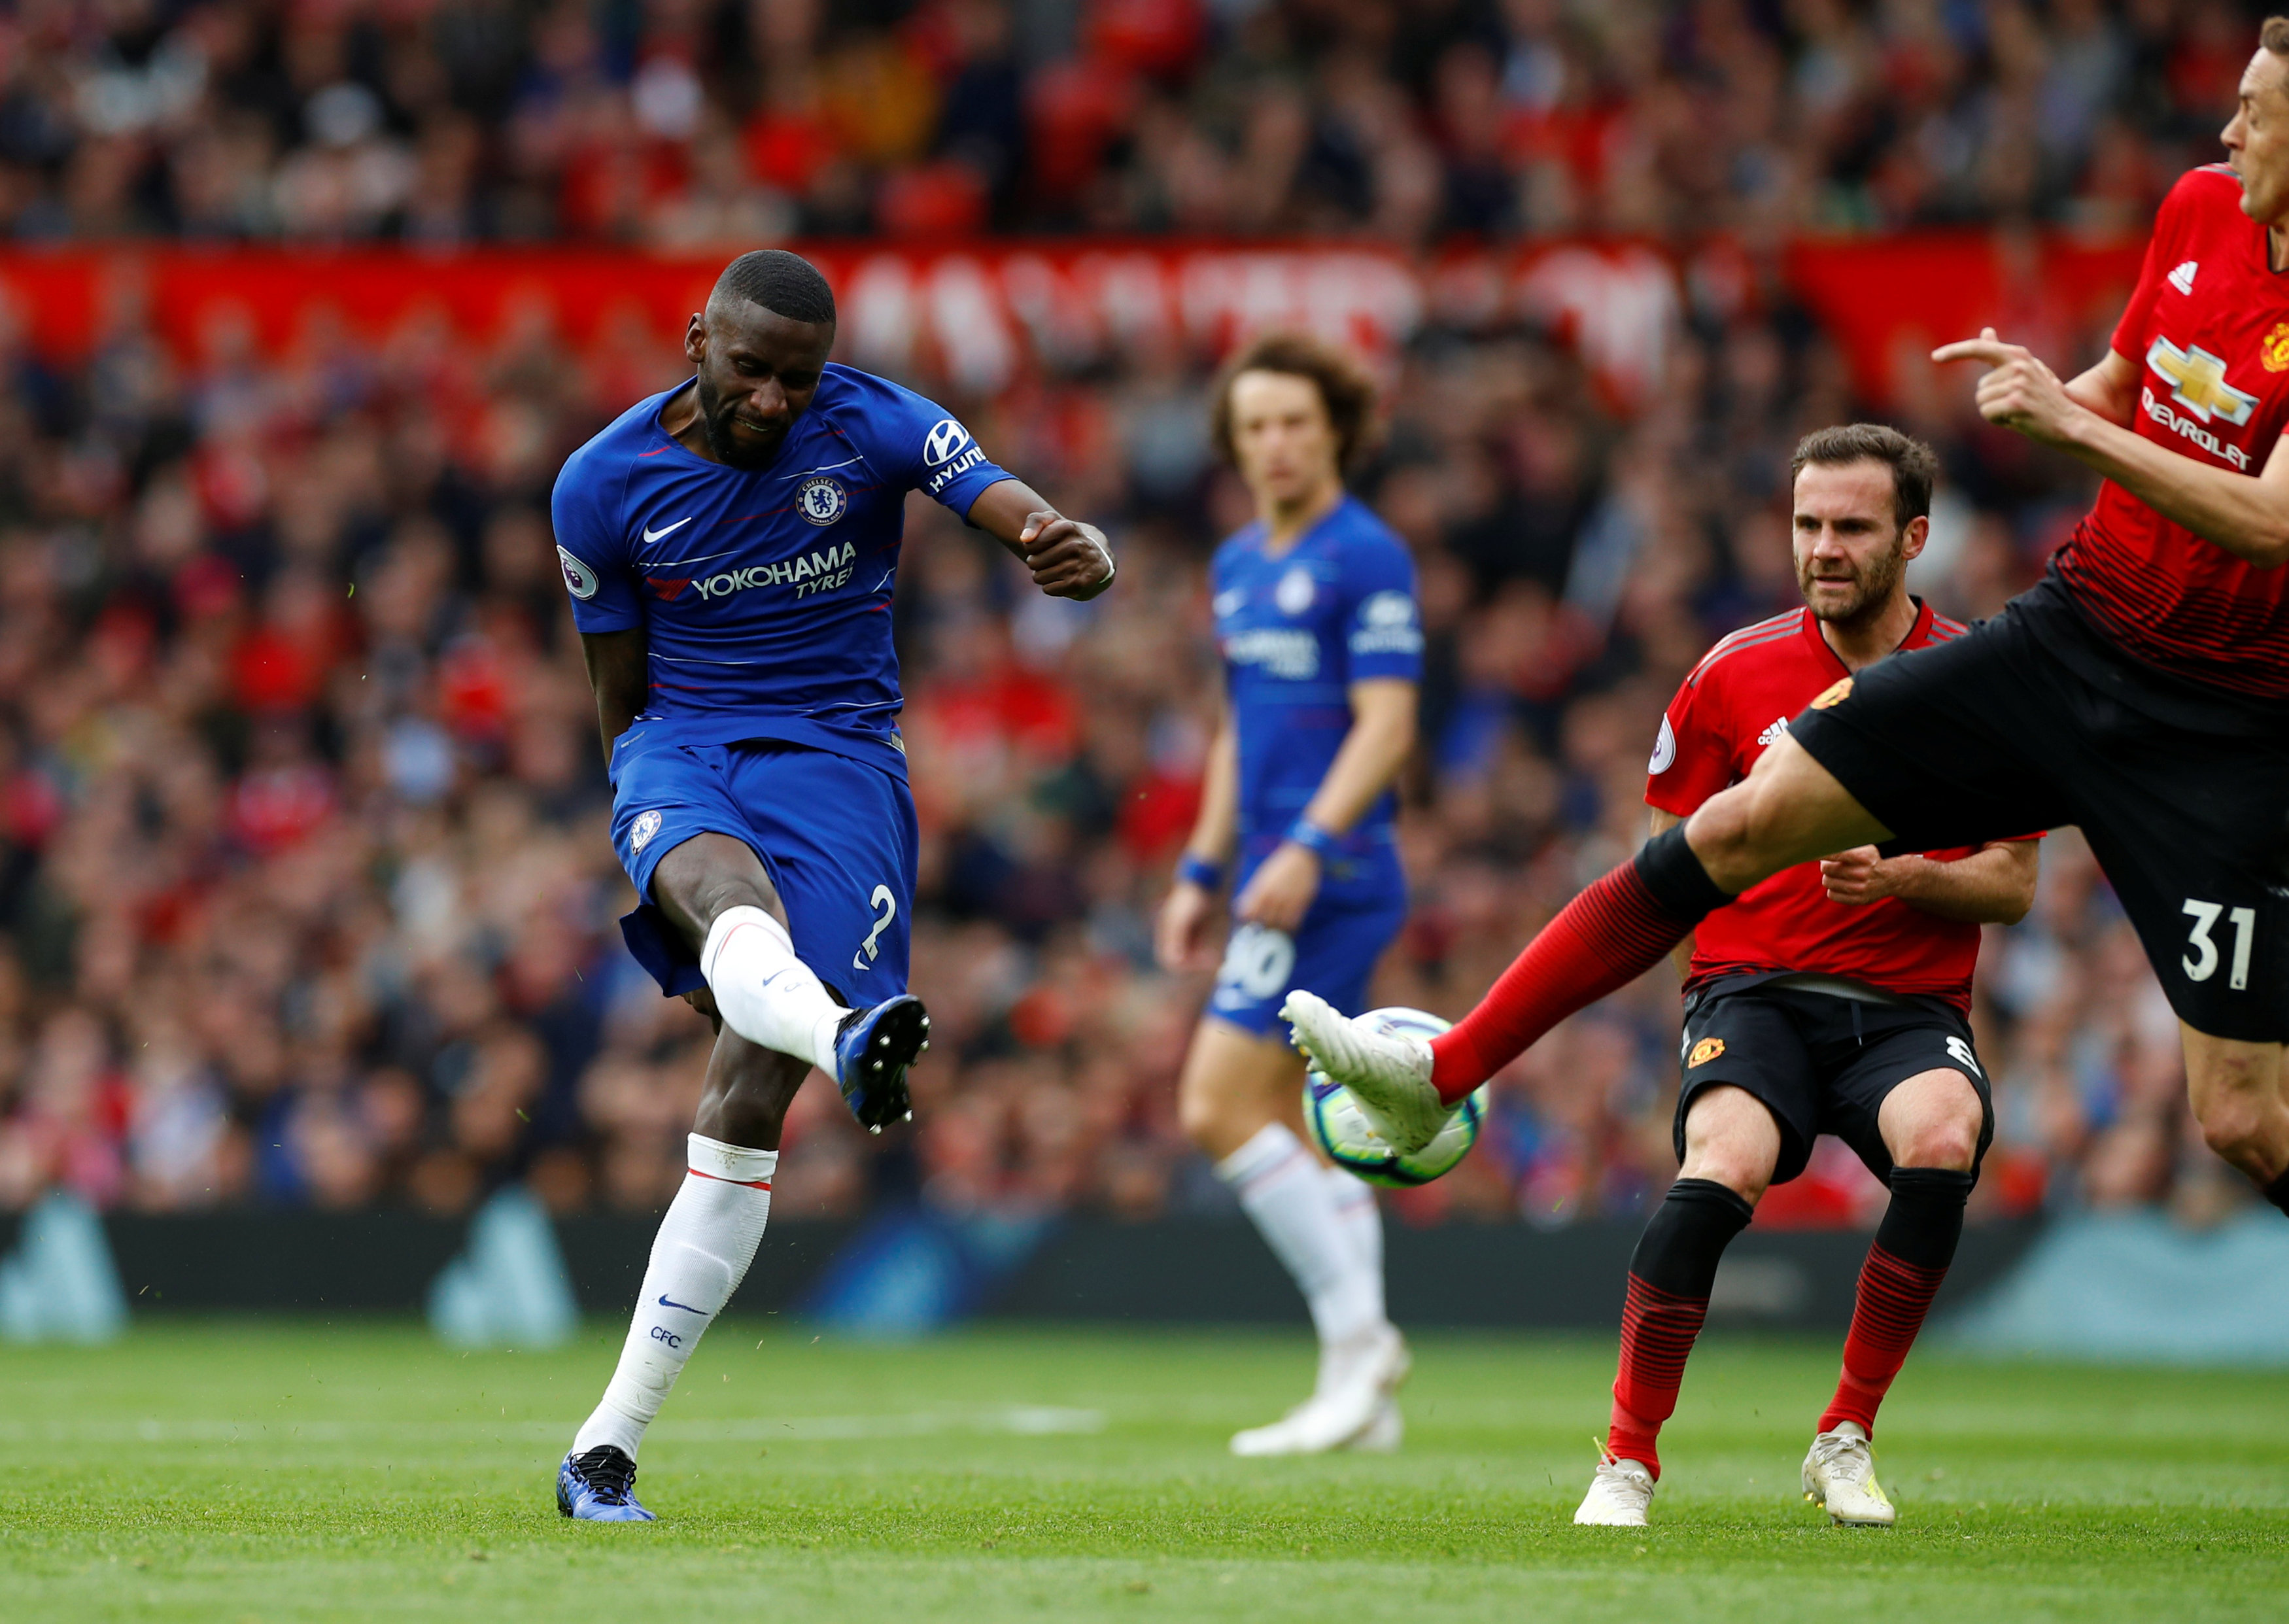 Antonio Rudiger and Reece James to return for Chelsea after international break